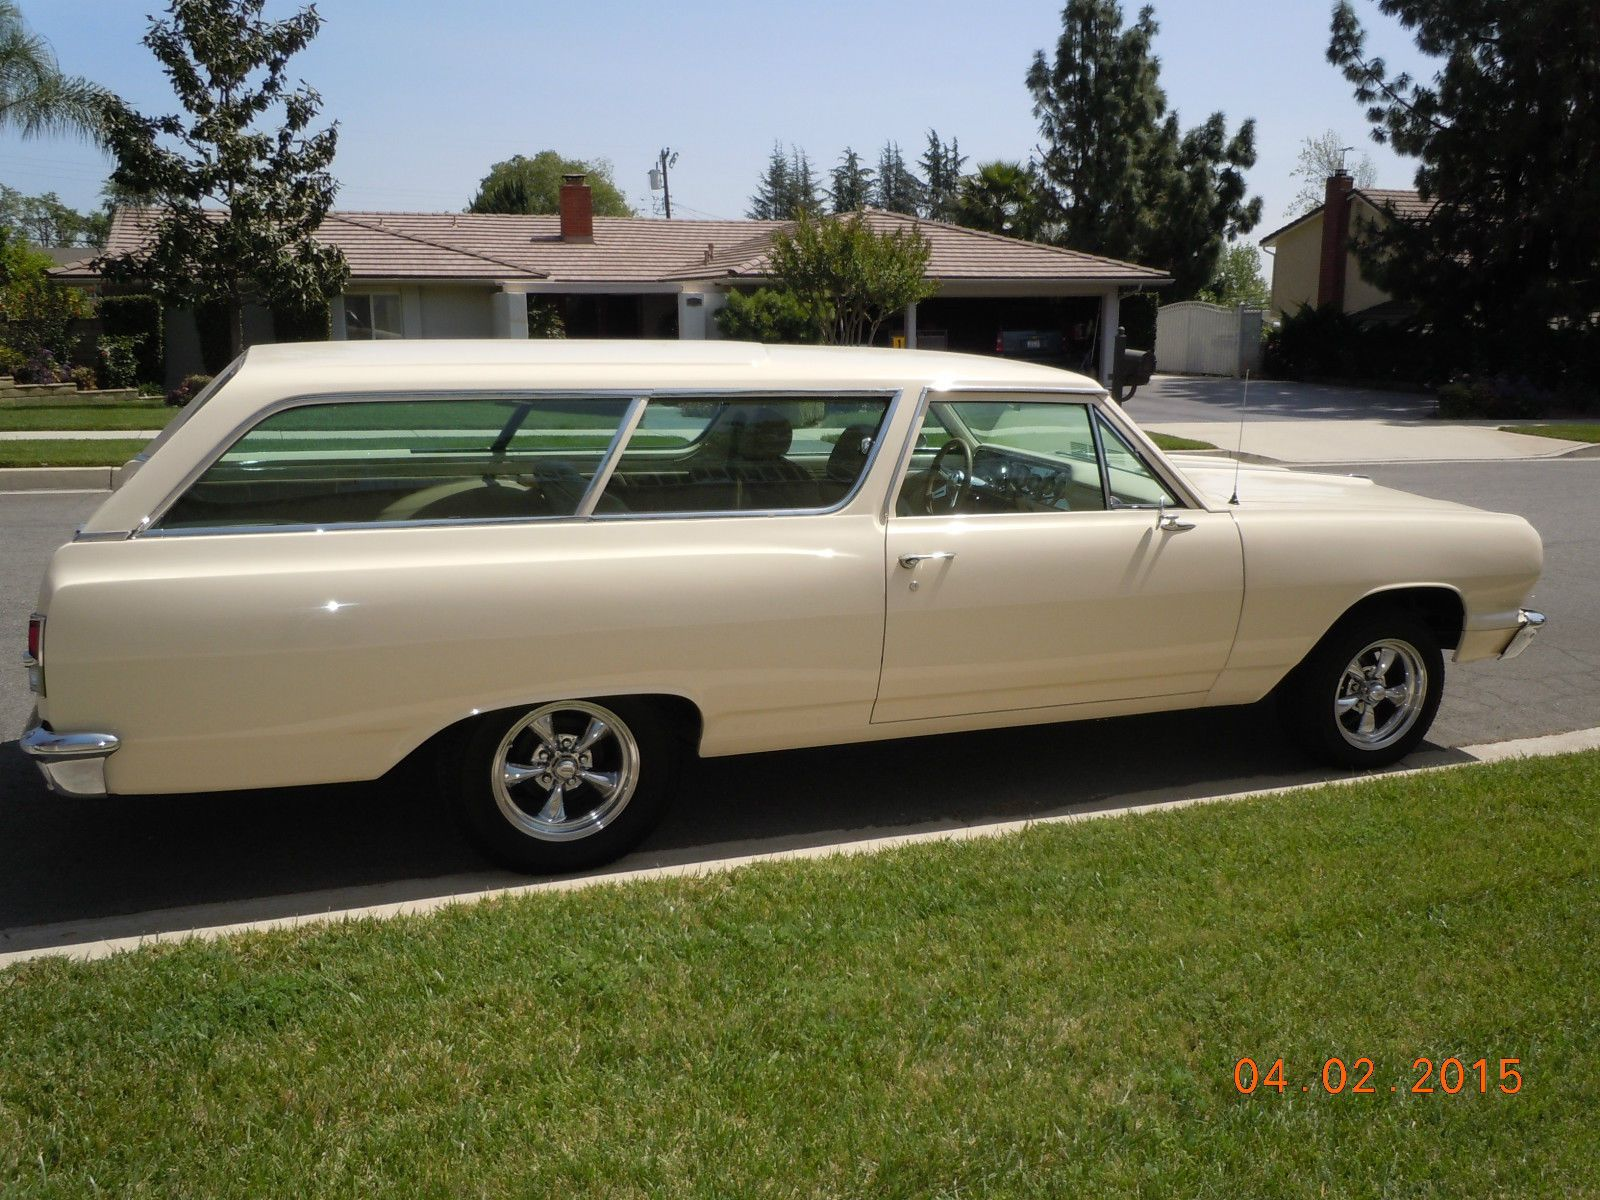 64 Chevelle 2 Door Wagon Chevrolet Chevelle Station Wagon Cars Chevelle